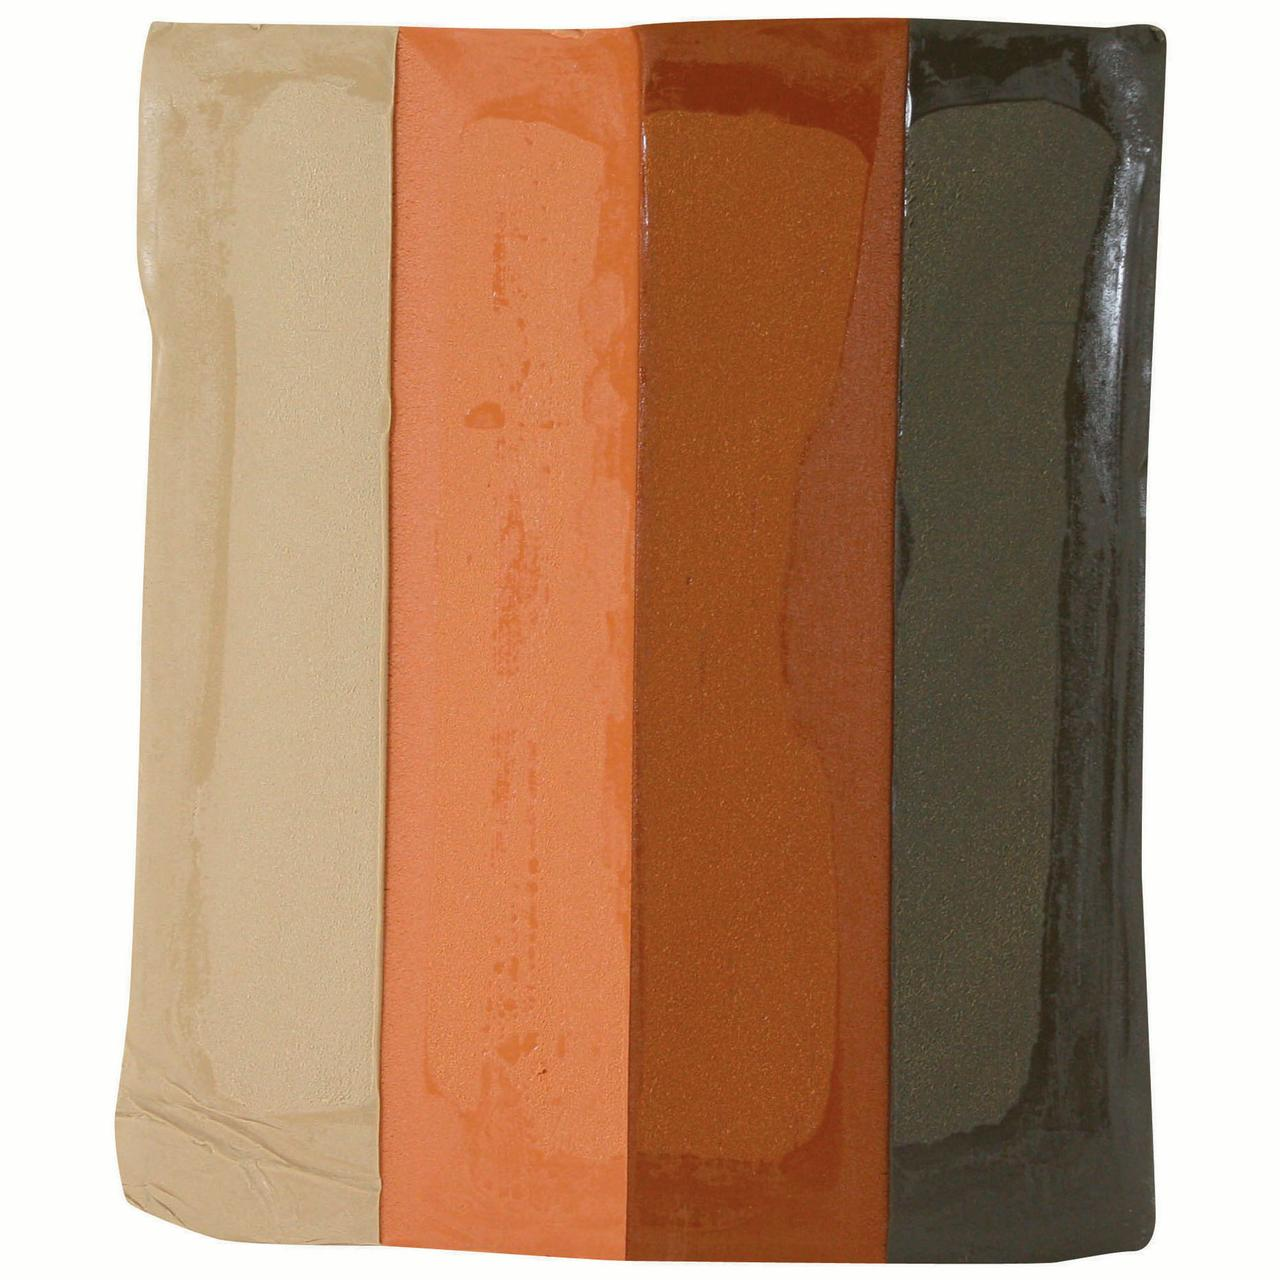 Sargent Art® Modeling Clay, Earth Tone Colors, Pack of 12 packs